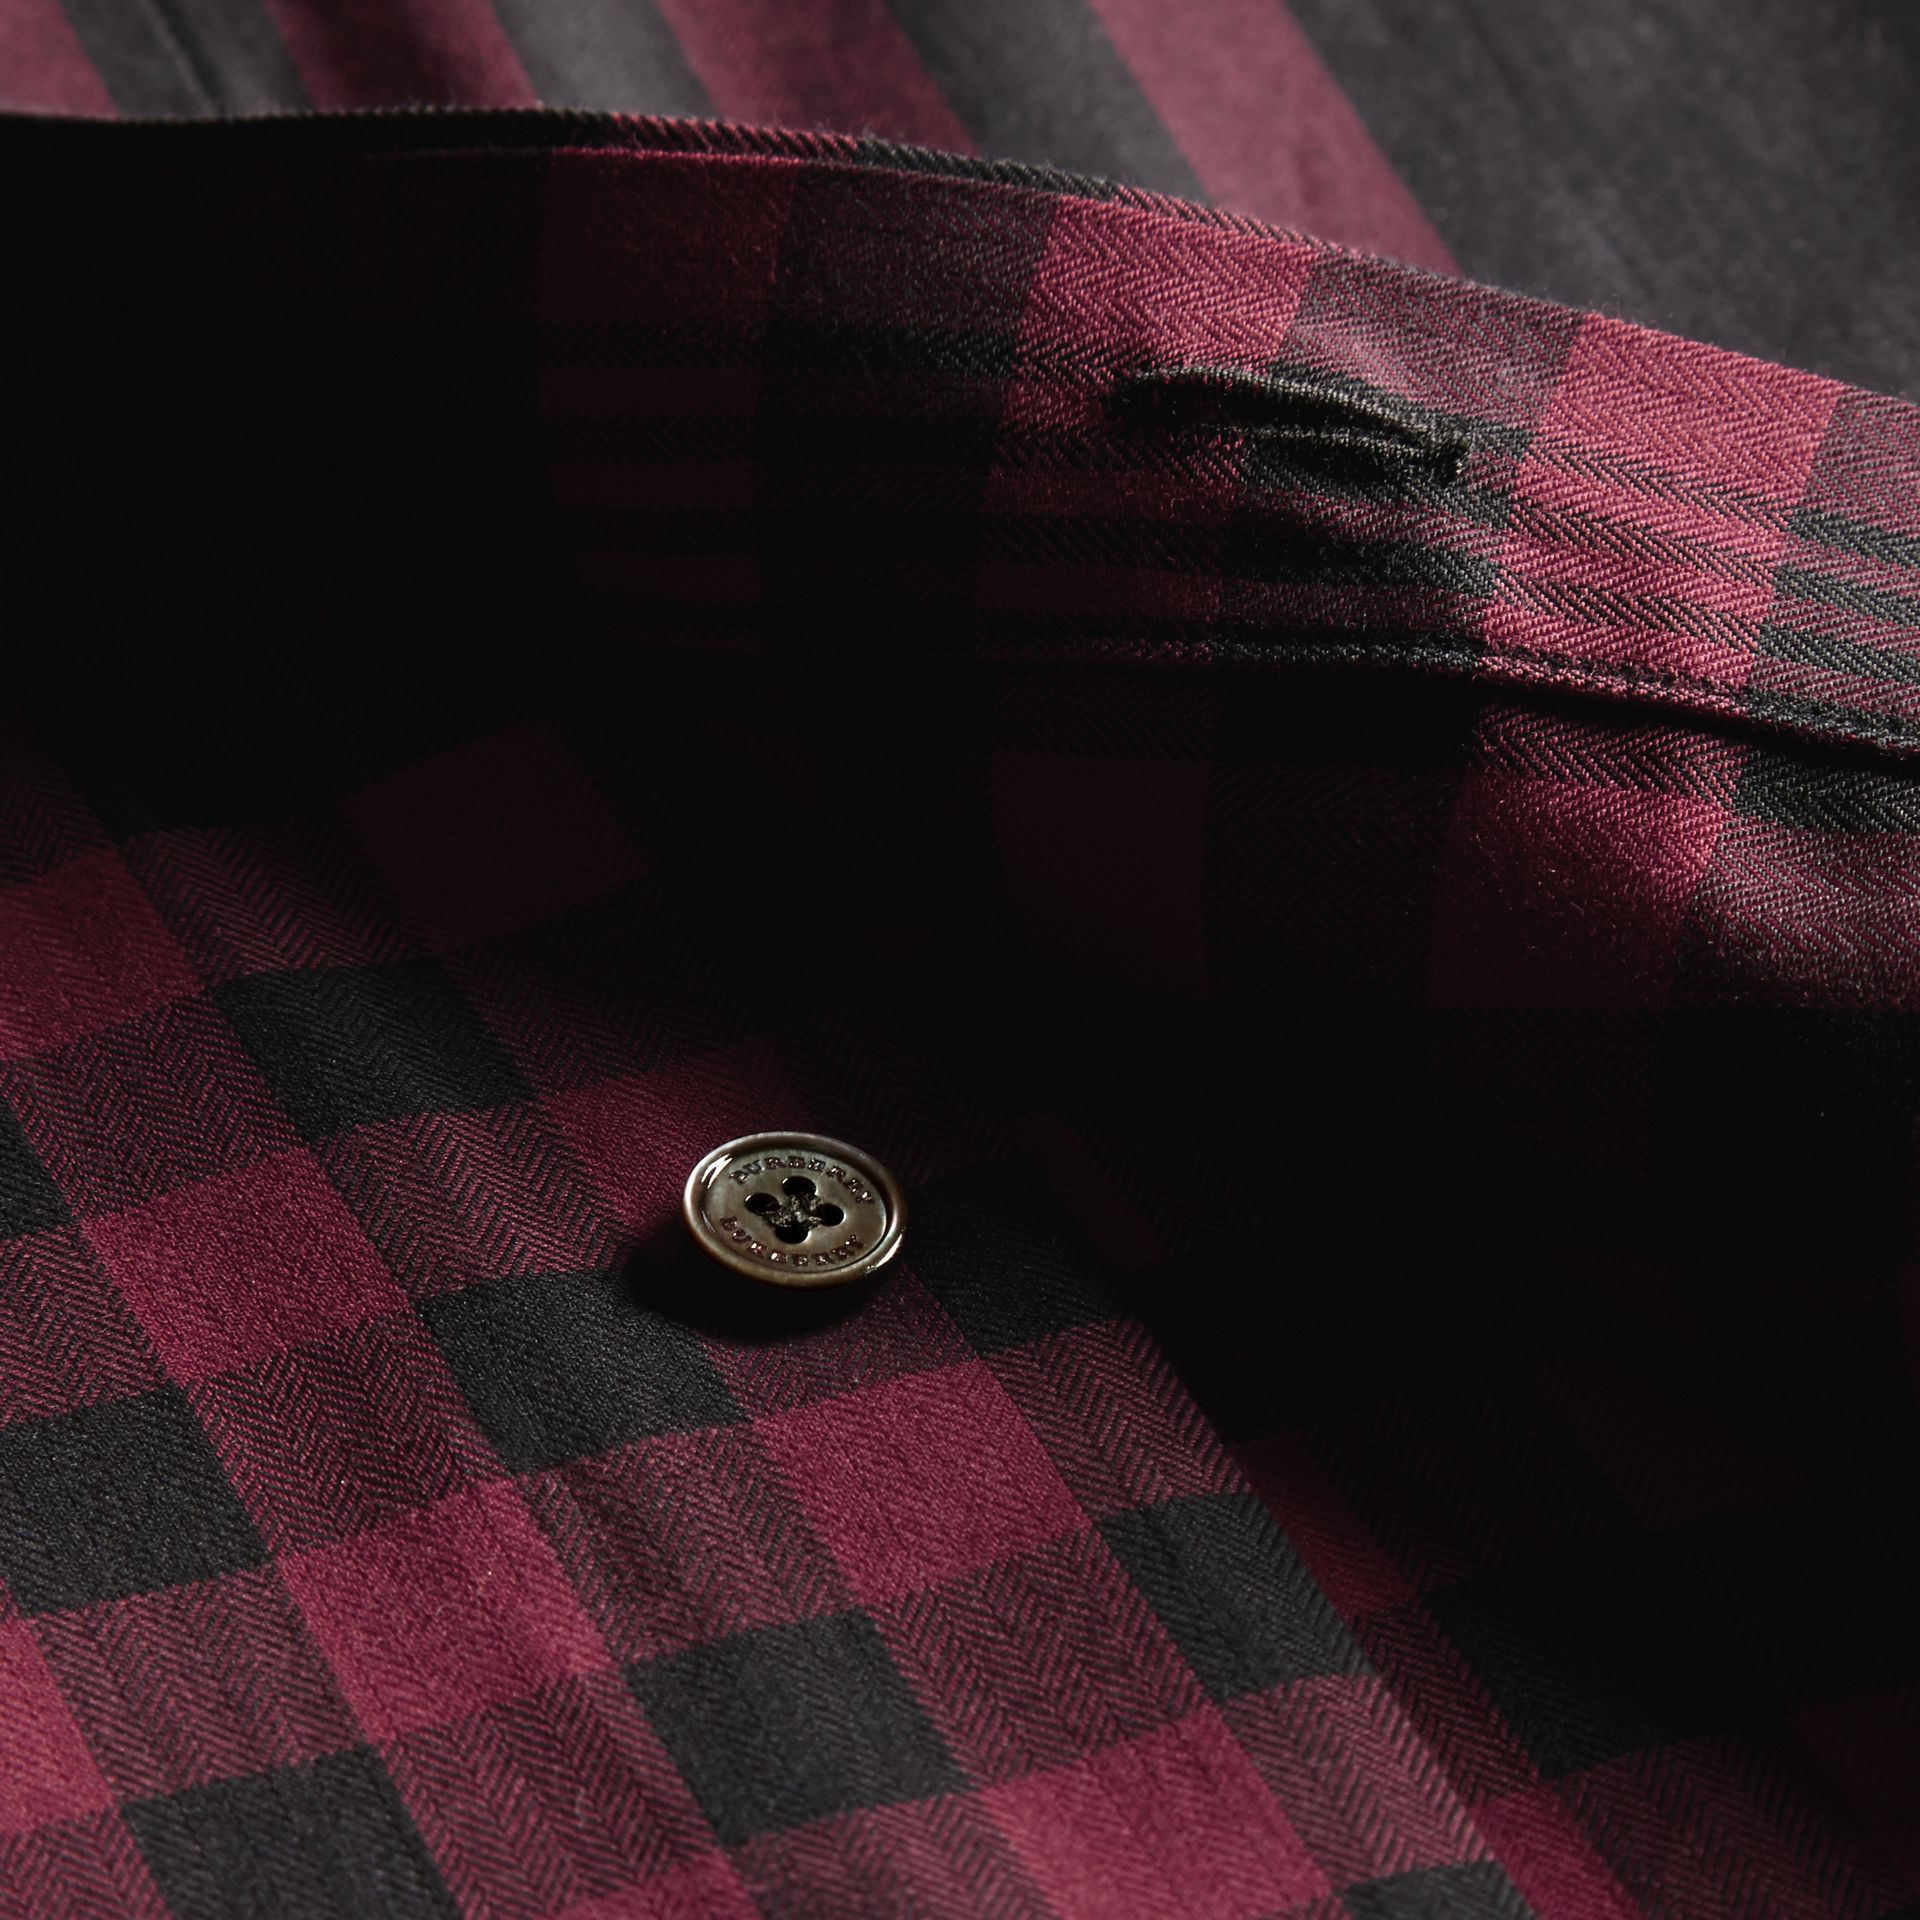 Burgundy red Graphic Check Cotton Shirt Burgundy Red - gallery image 2